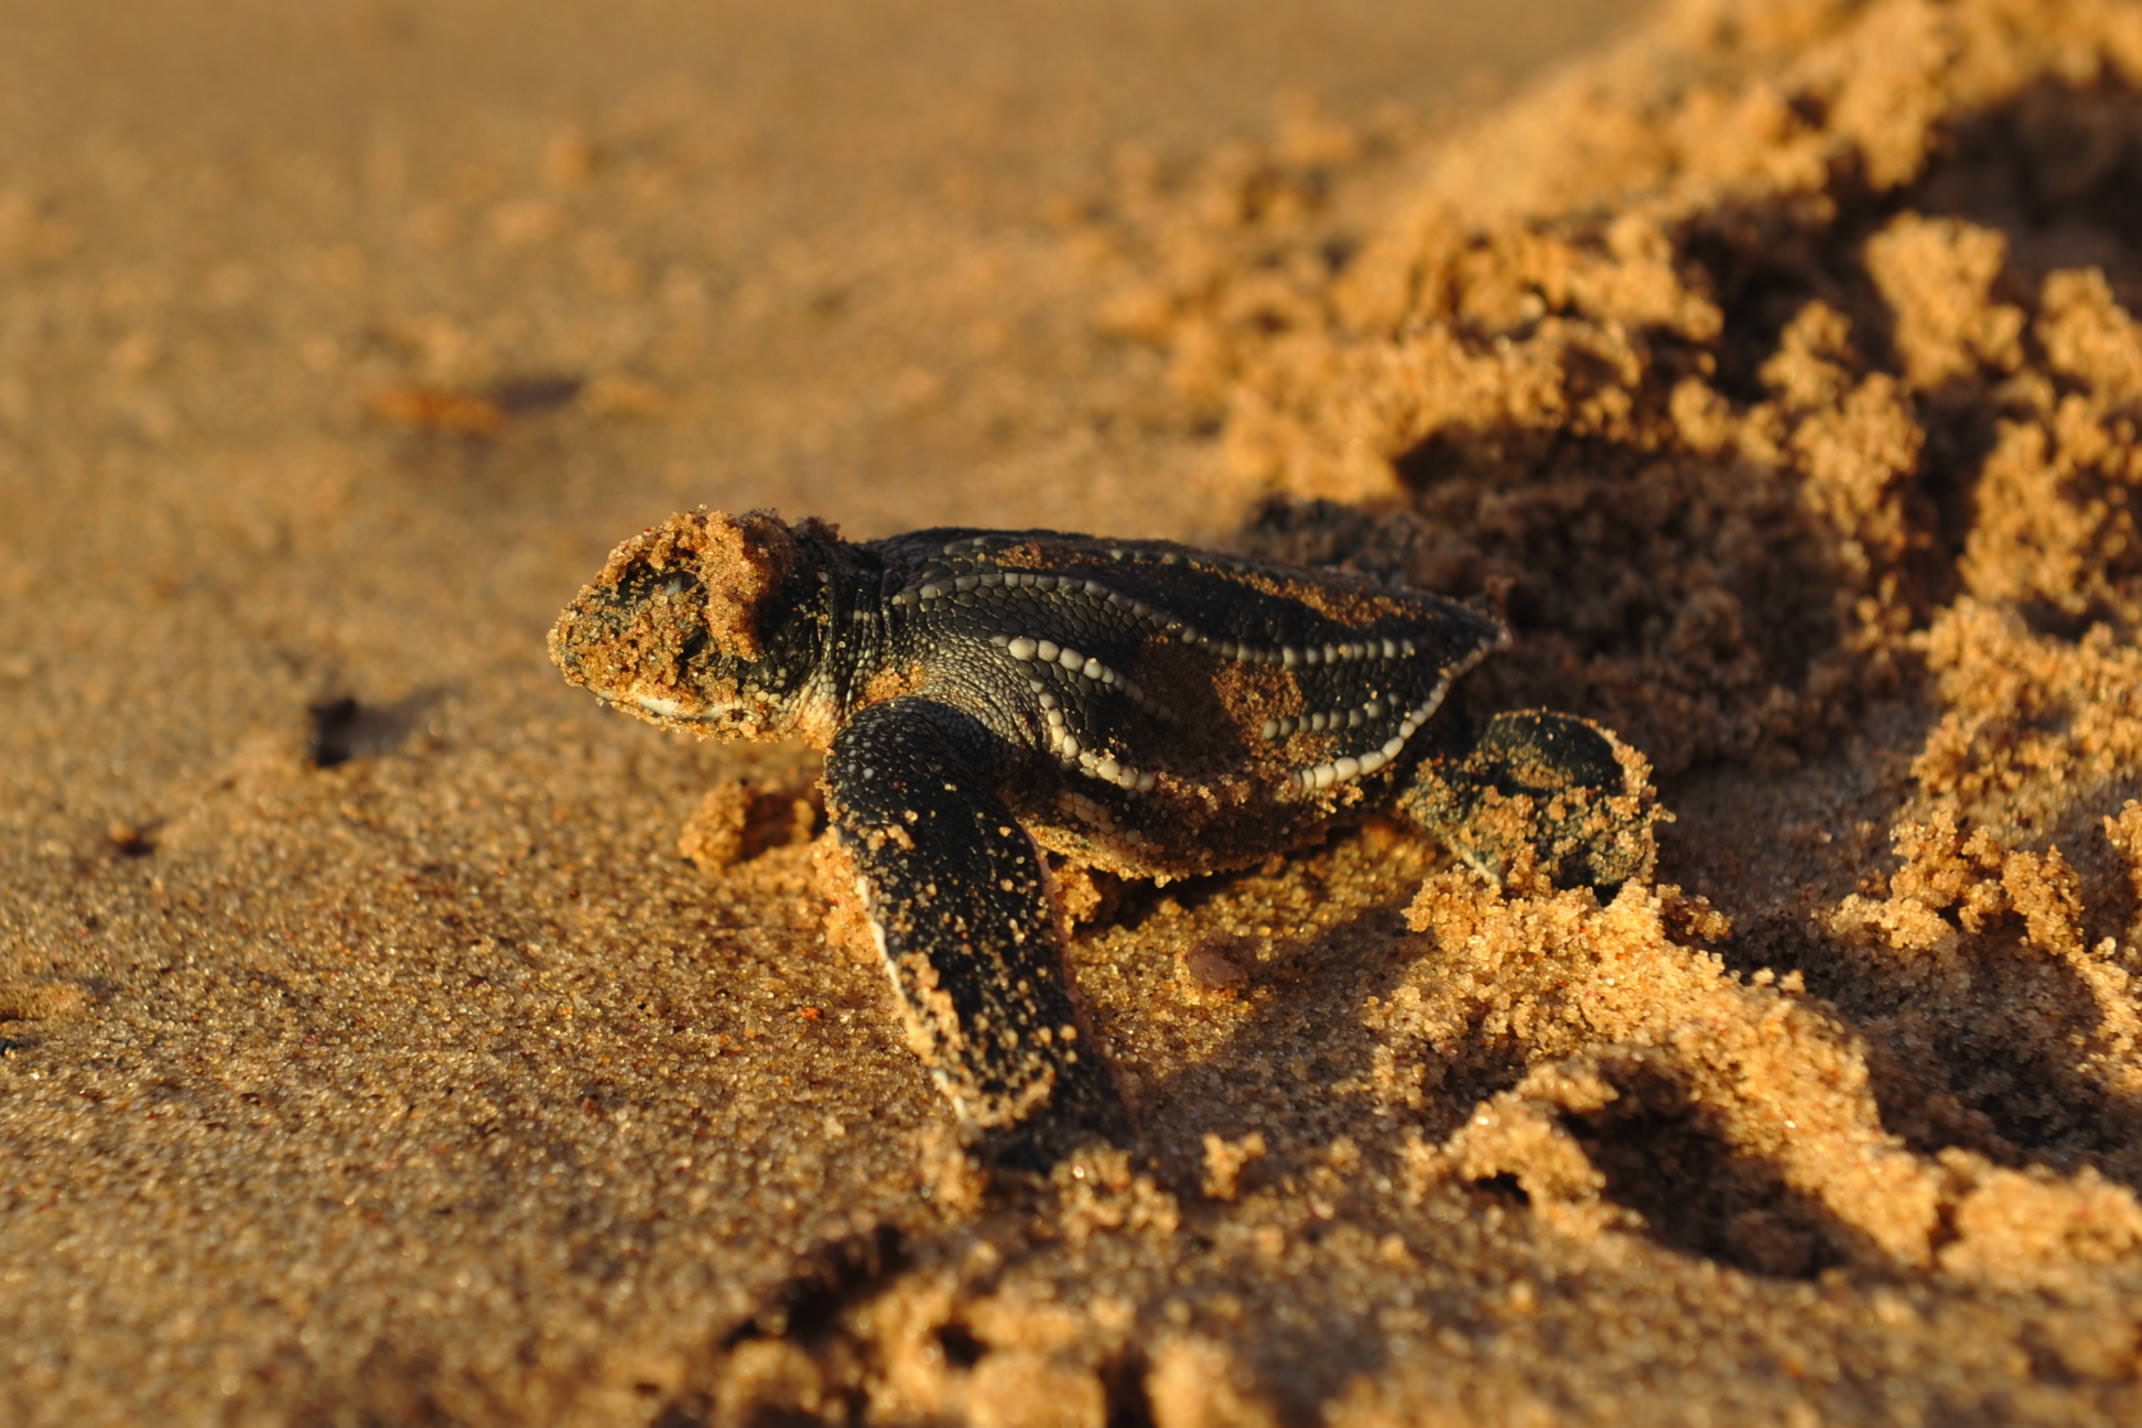 Costa rica pacific hatching turtle stephanie rousseau CROPPED